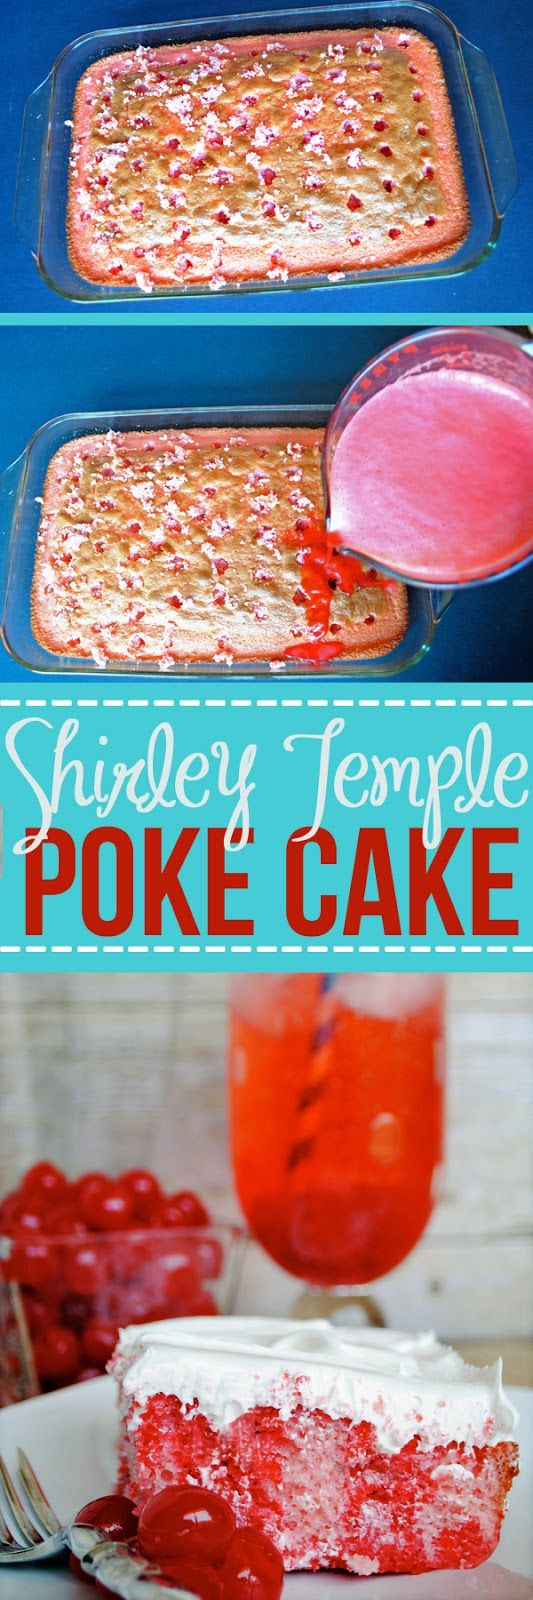 Shirley Temple Poke Cake: All of the flavors of the classic drink in one delicious dessert!